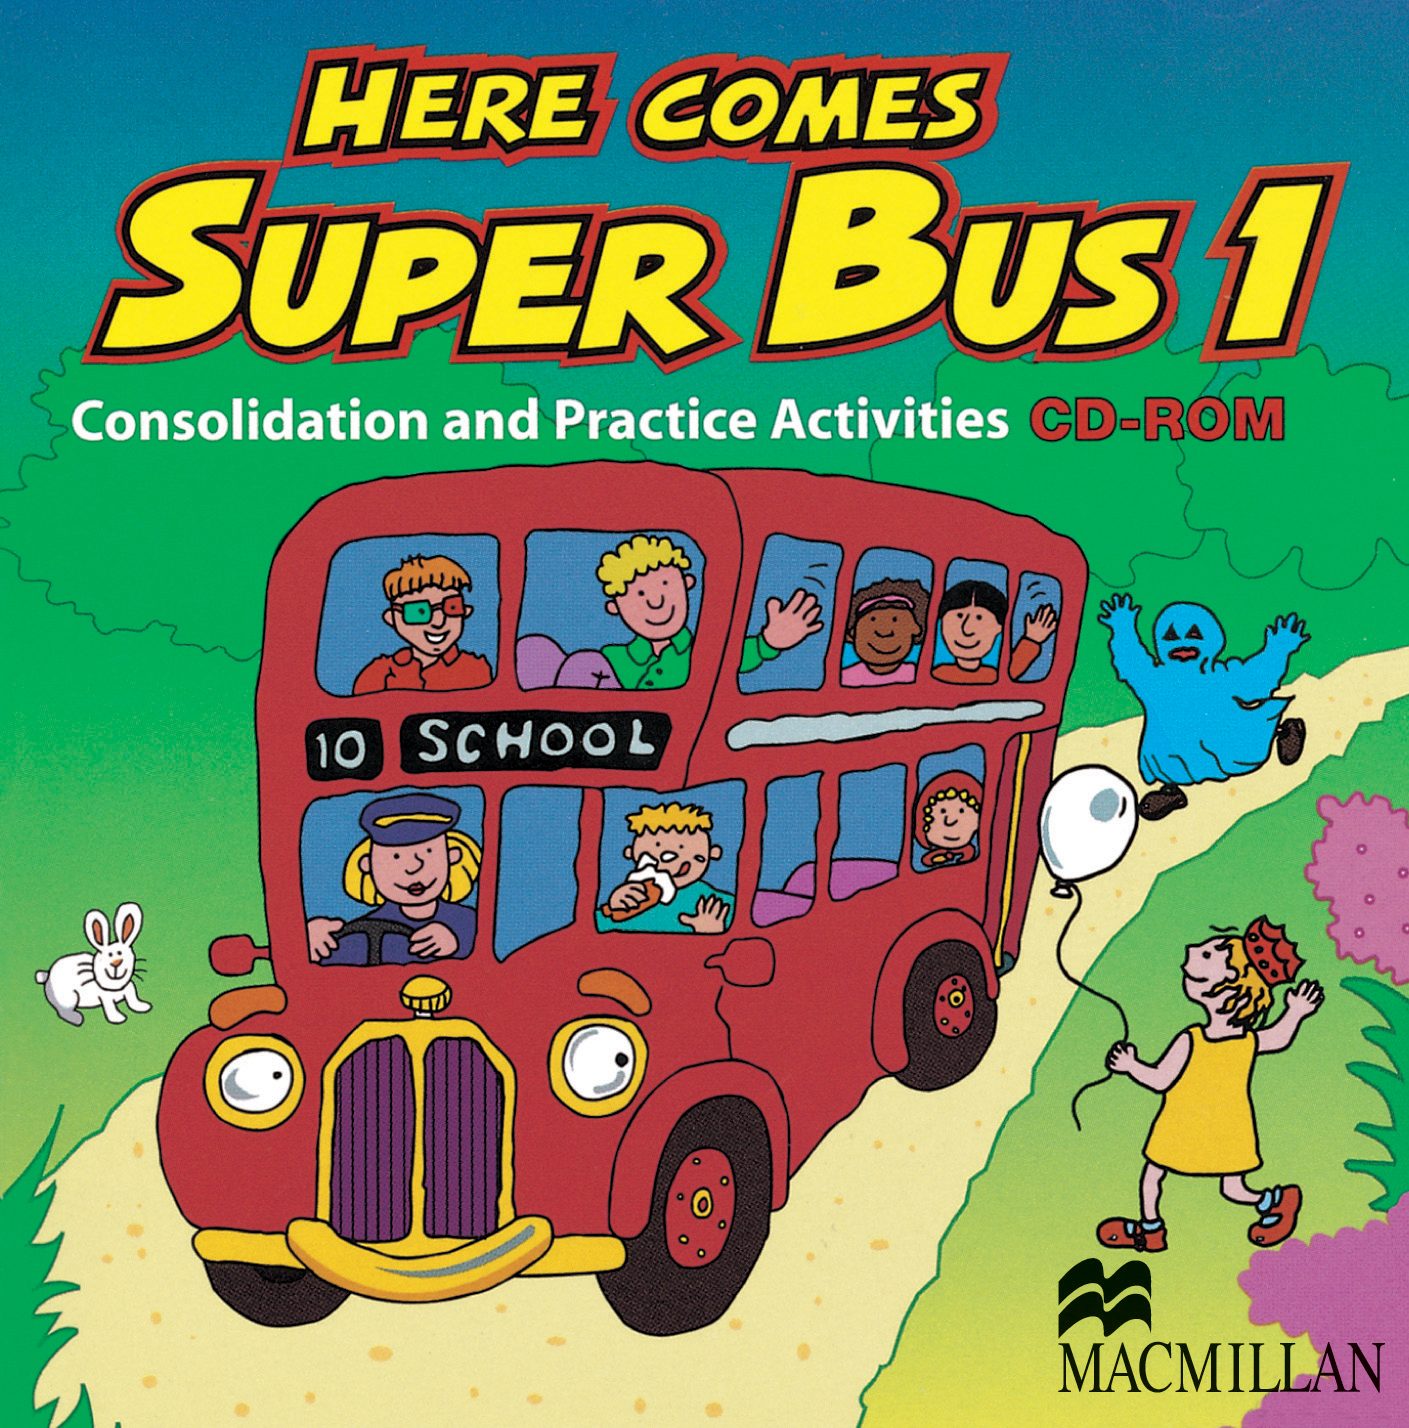 Here Comes Super Bus 1 Consolidation and Practice Activities CD-ROM